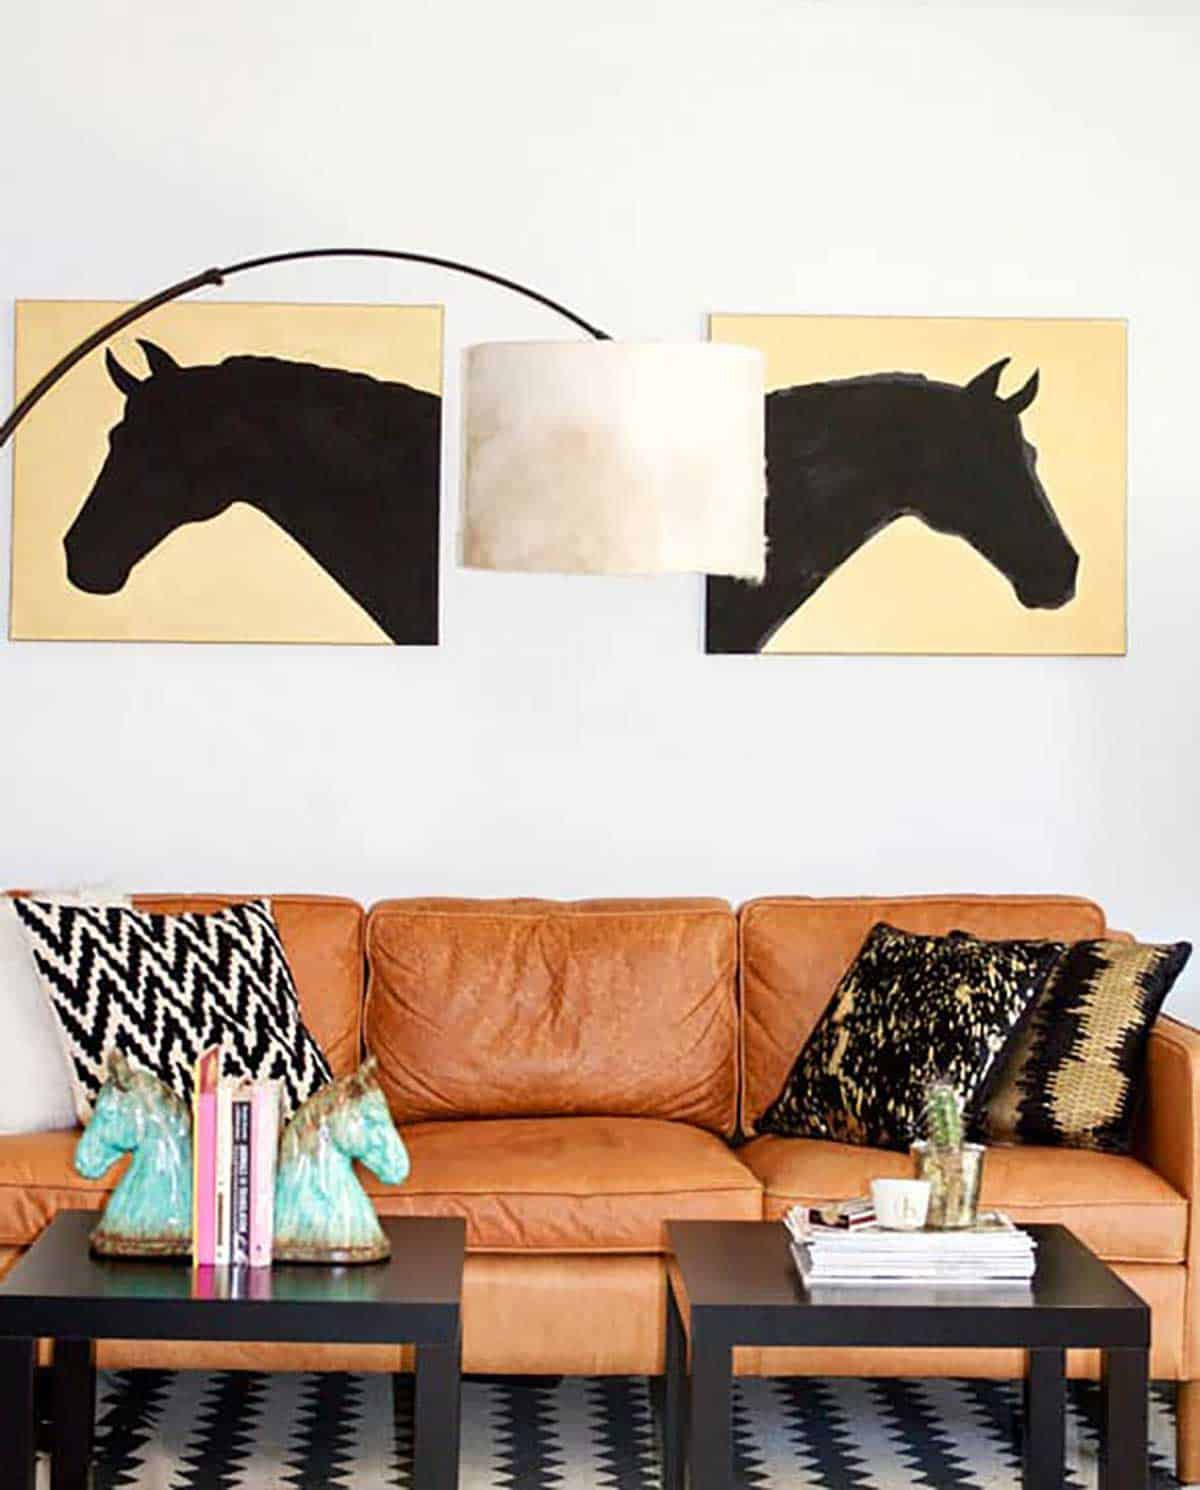 Modern-equestrian-living-room-with-a-DIY-drum-cowhide-lampshade